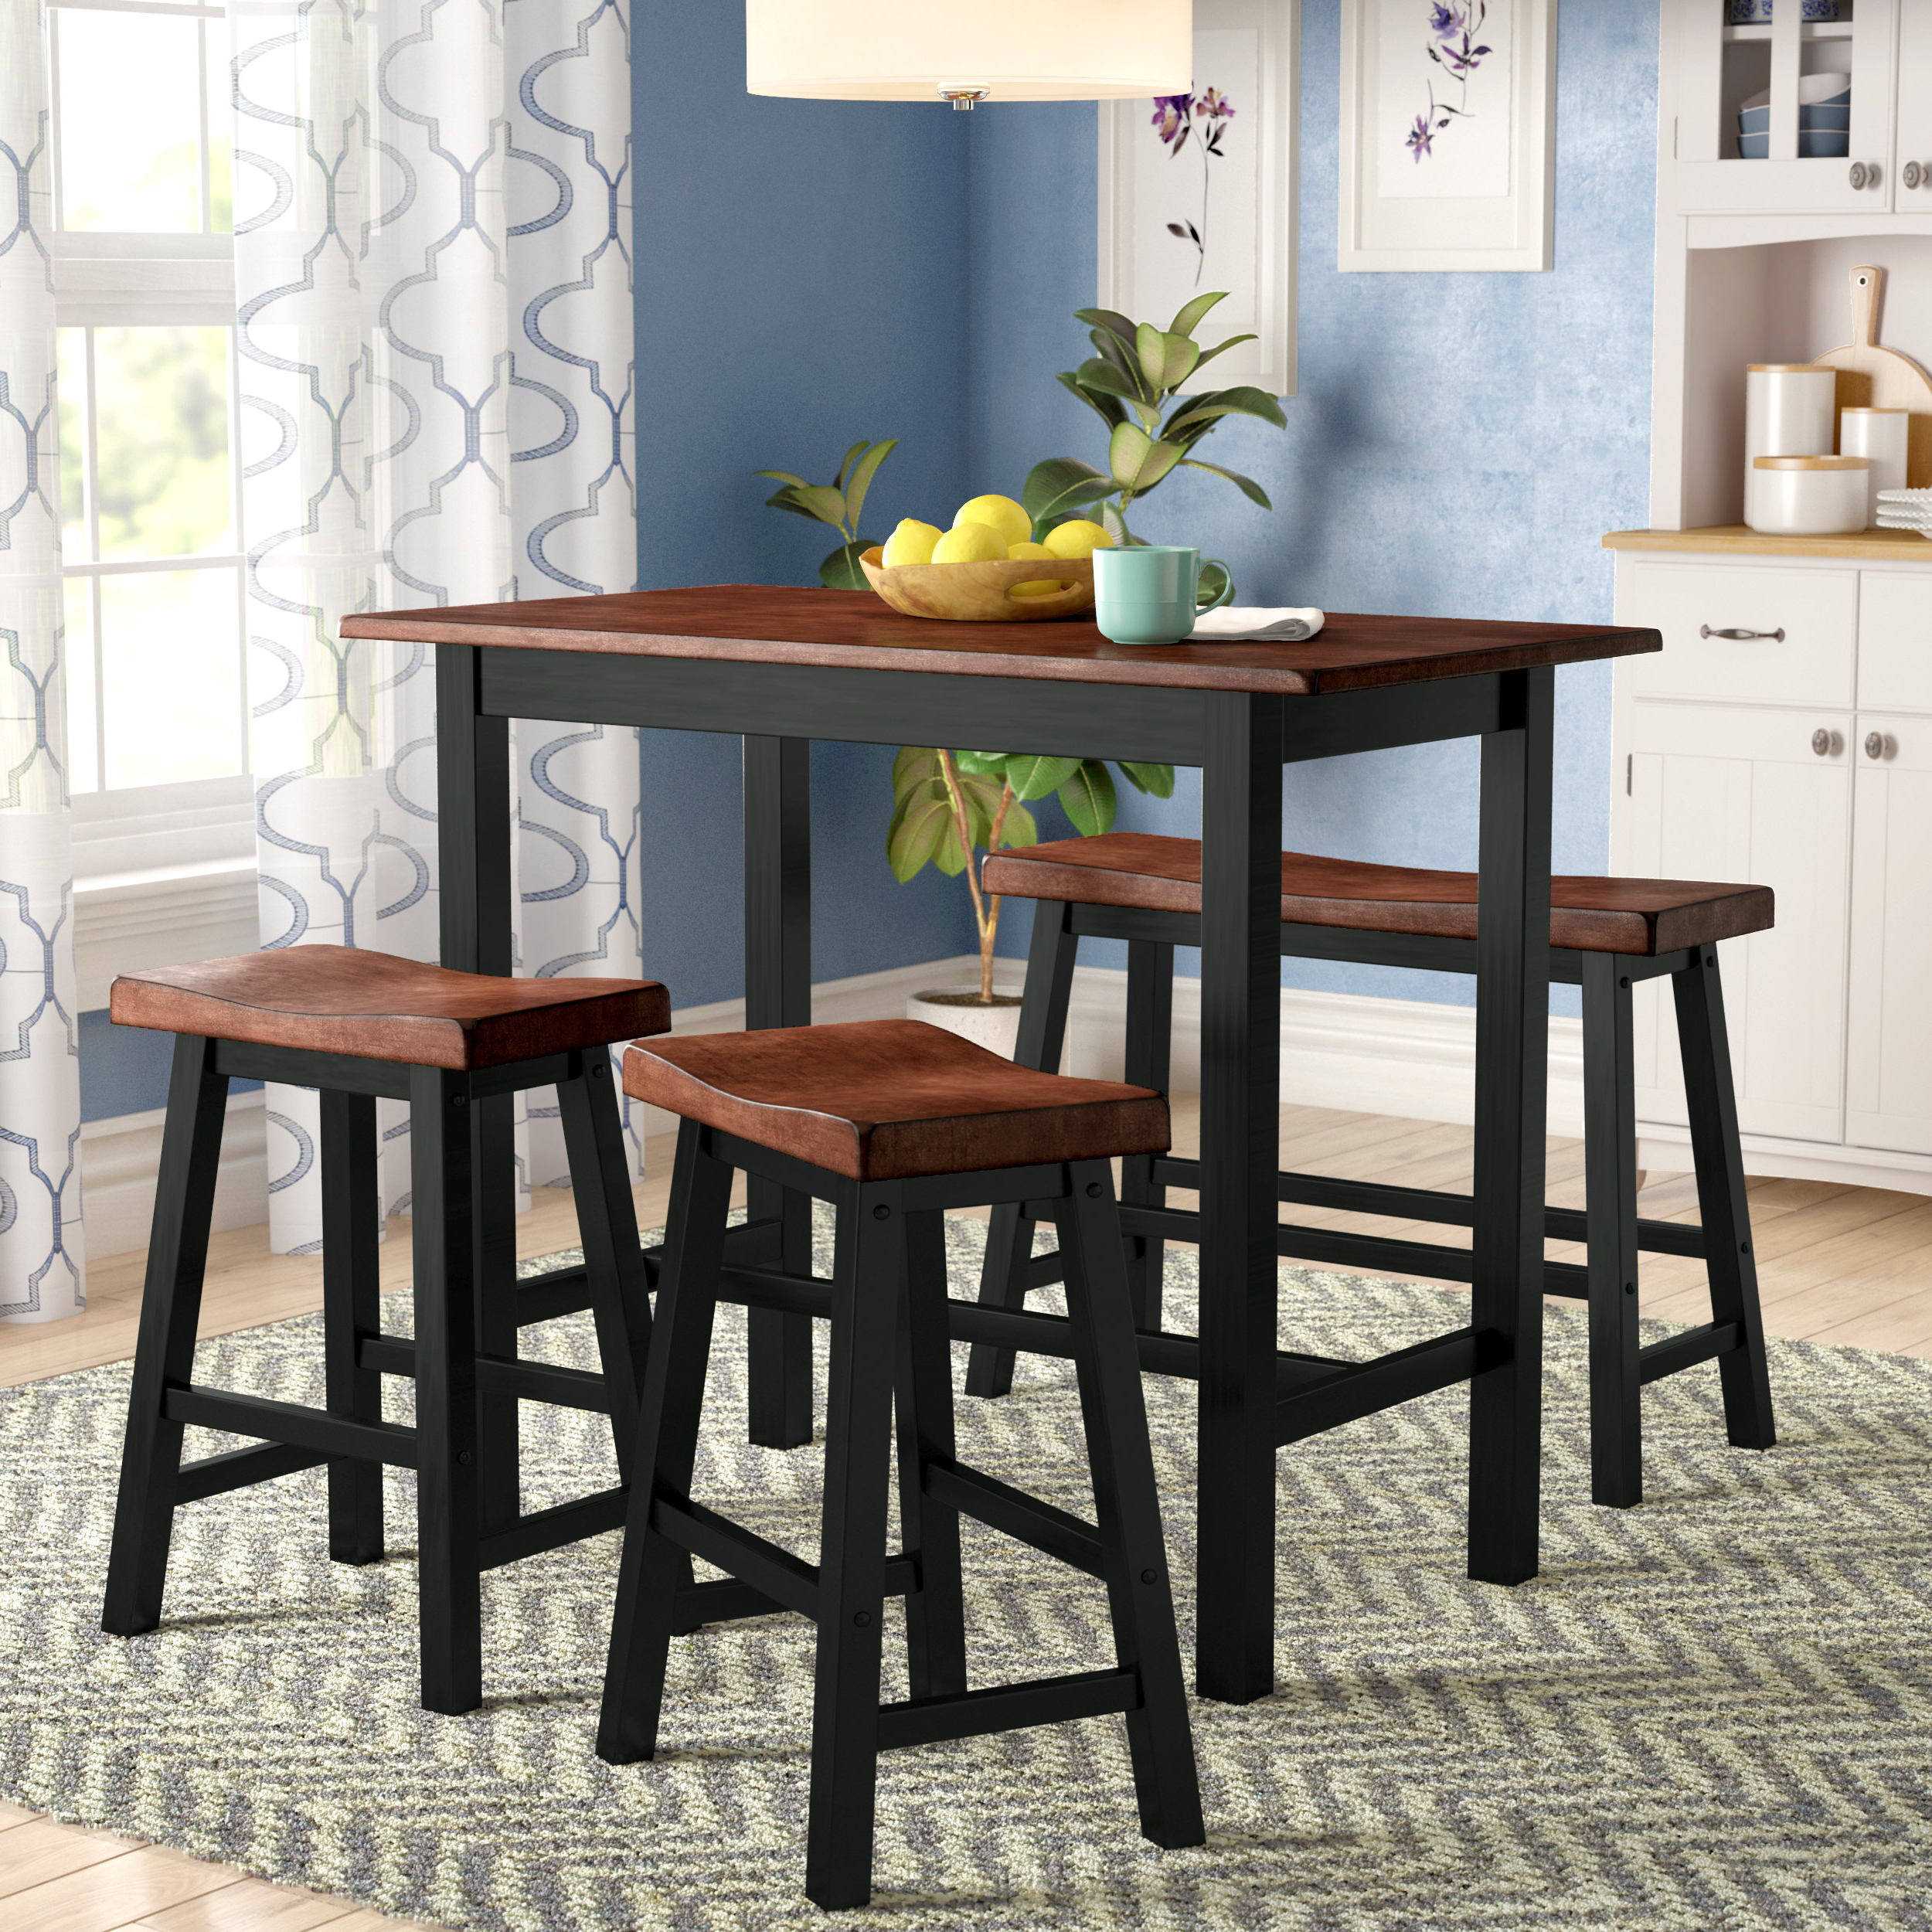 Widely Used Red Barrel Studio Opal 4 Piece Counter Height Dining Set & Reviews Inside Kerley 4 Piece Dining Sets (View 25 of 25)